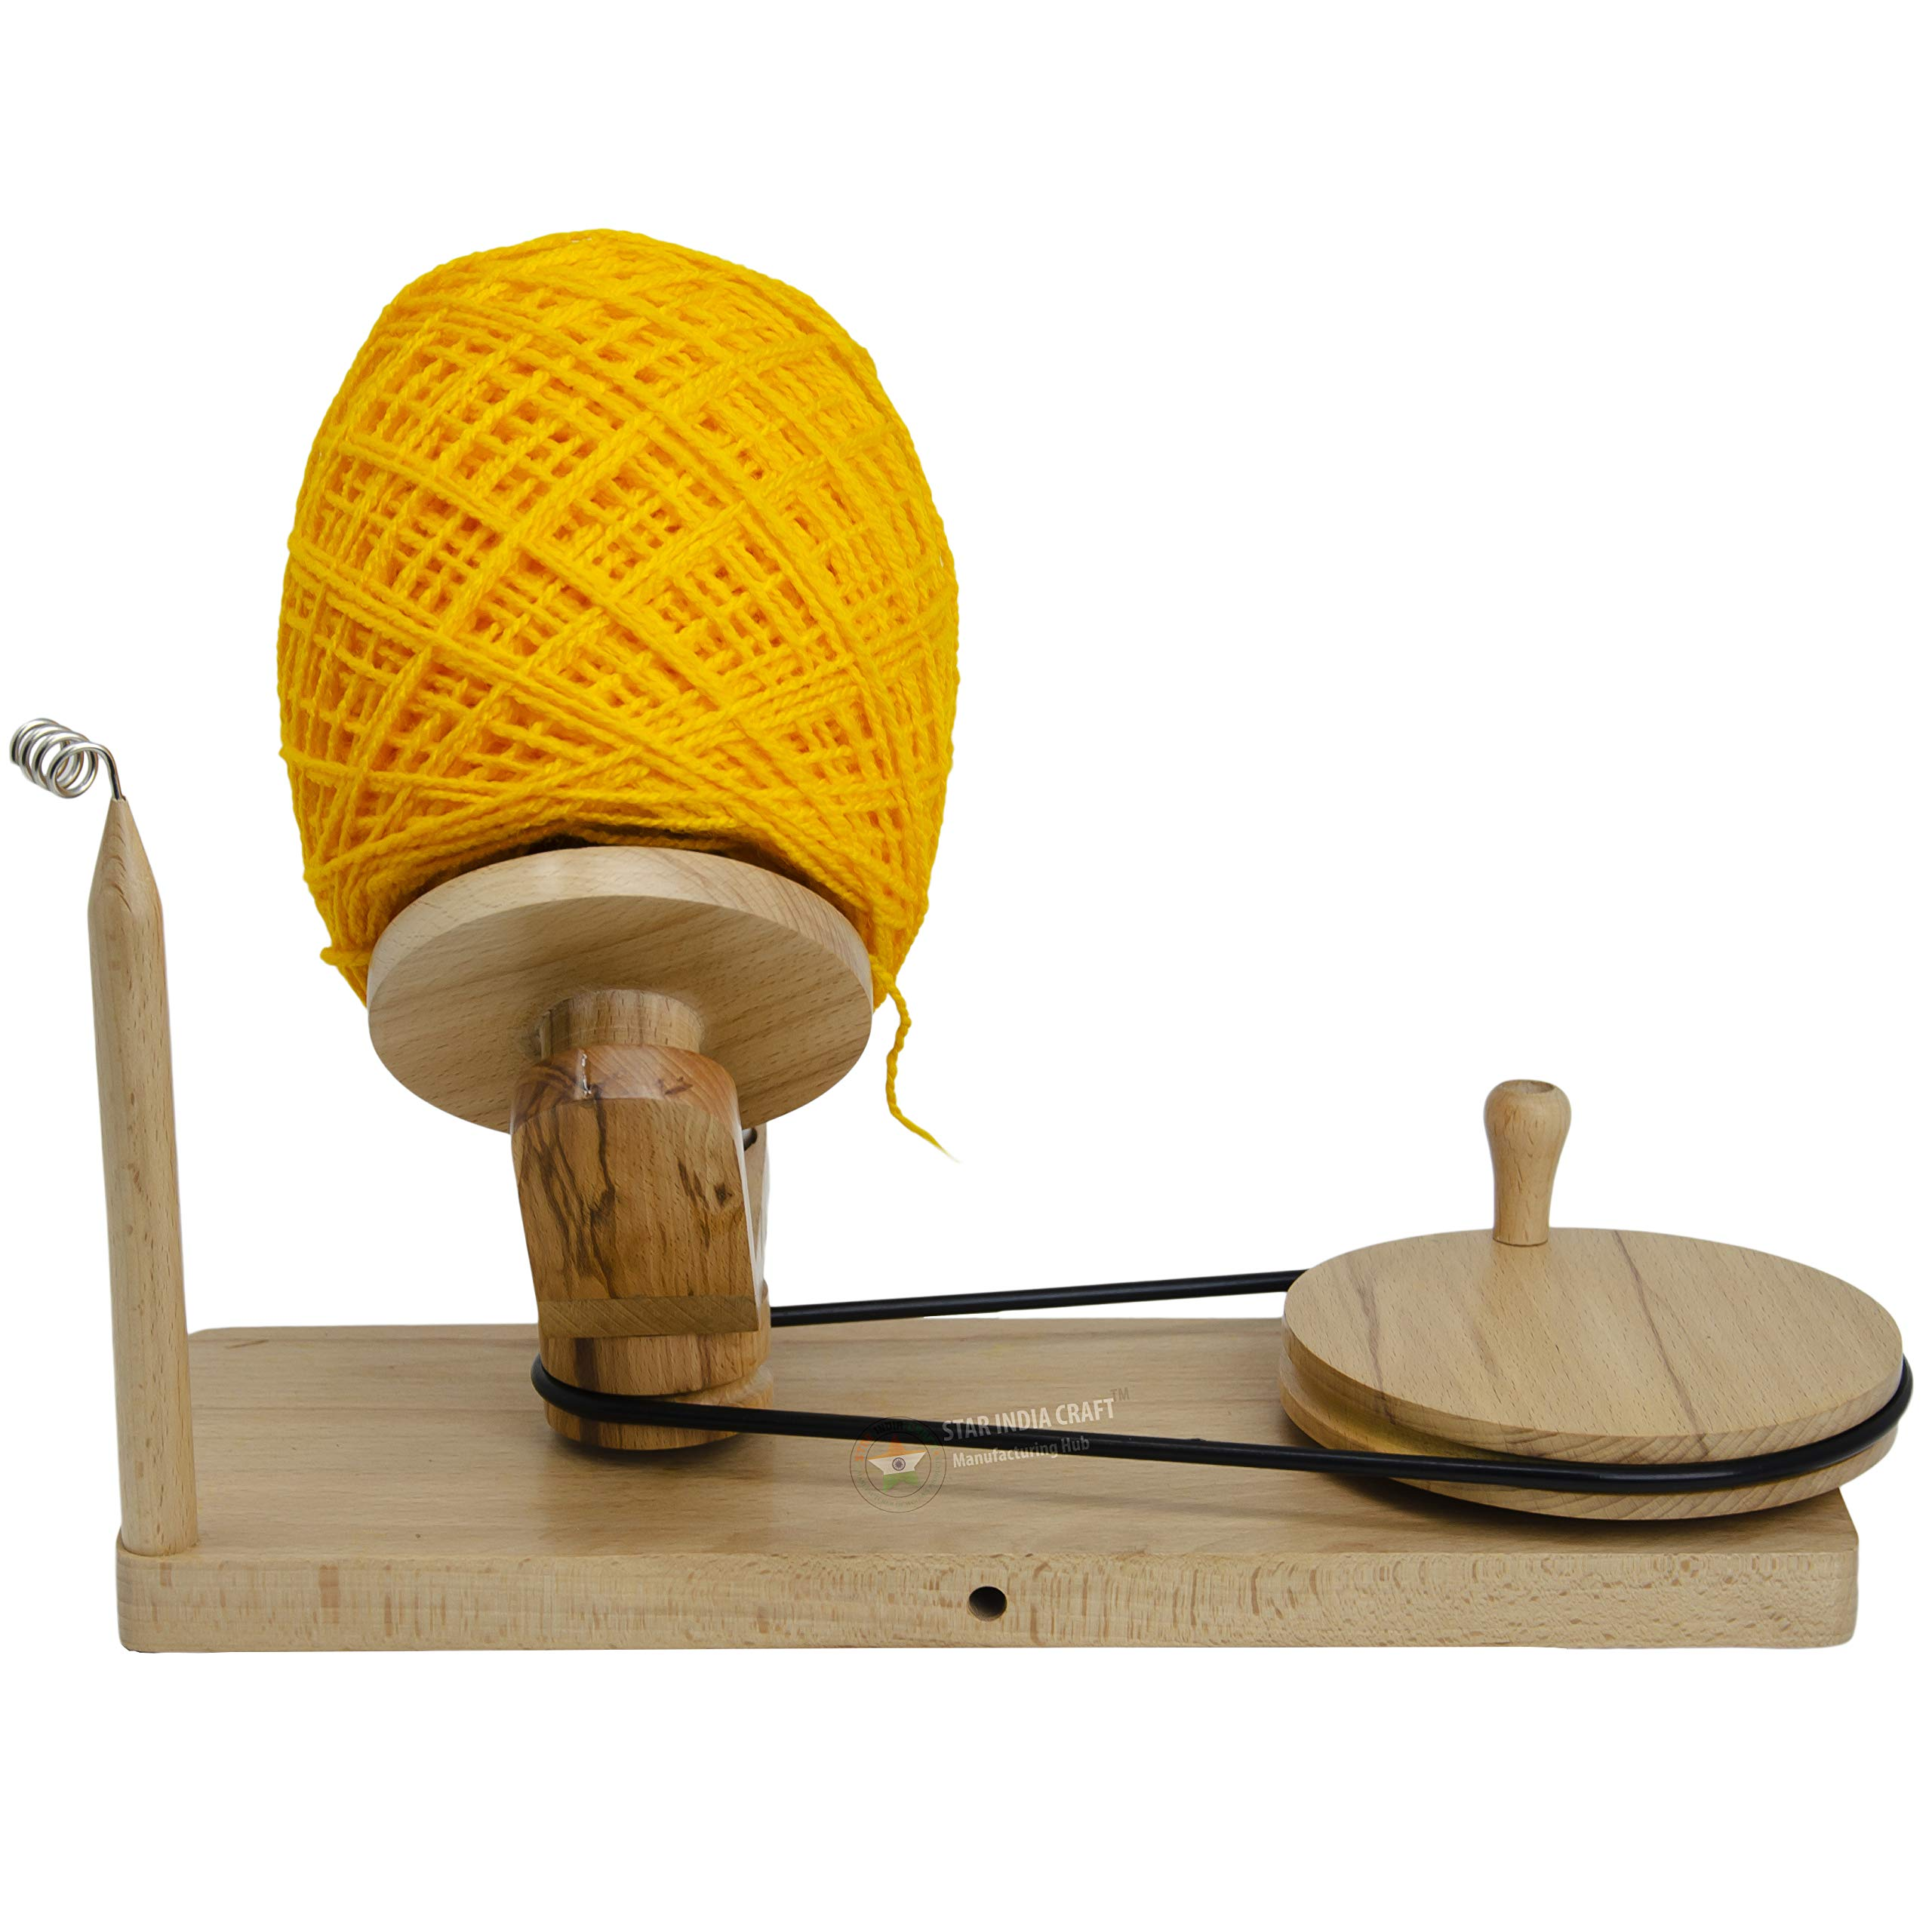 STAR INDIA CRAFT Handmade Center Pull Yarn Ball Winder - Natural Yarn Winder | Perfect DIY Knitter's Gifts for Knitting and Crocheting | Handcrafted Ball Winder (Yarn Winder, Standard) by STAR INDIA CRAFT (Image #4)